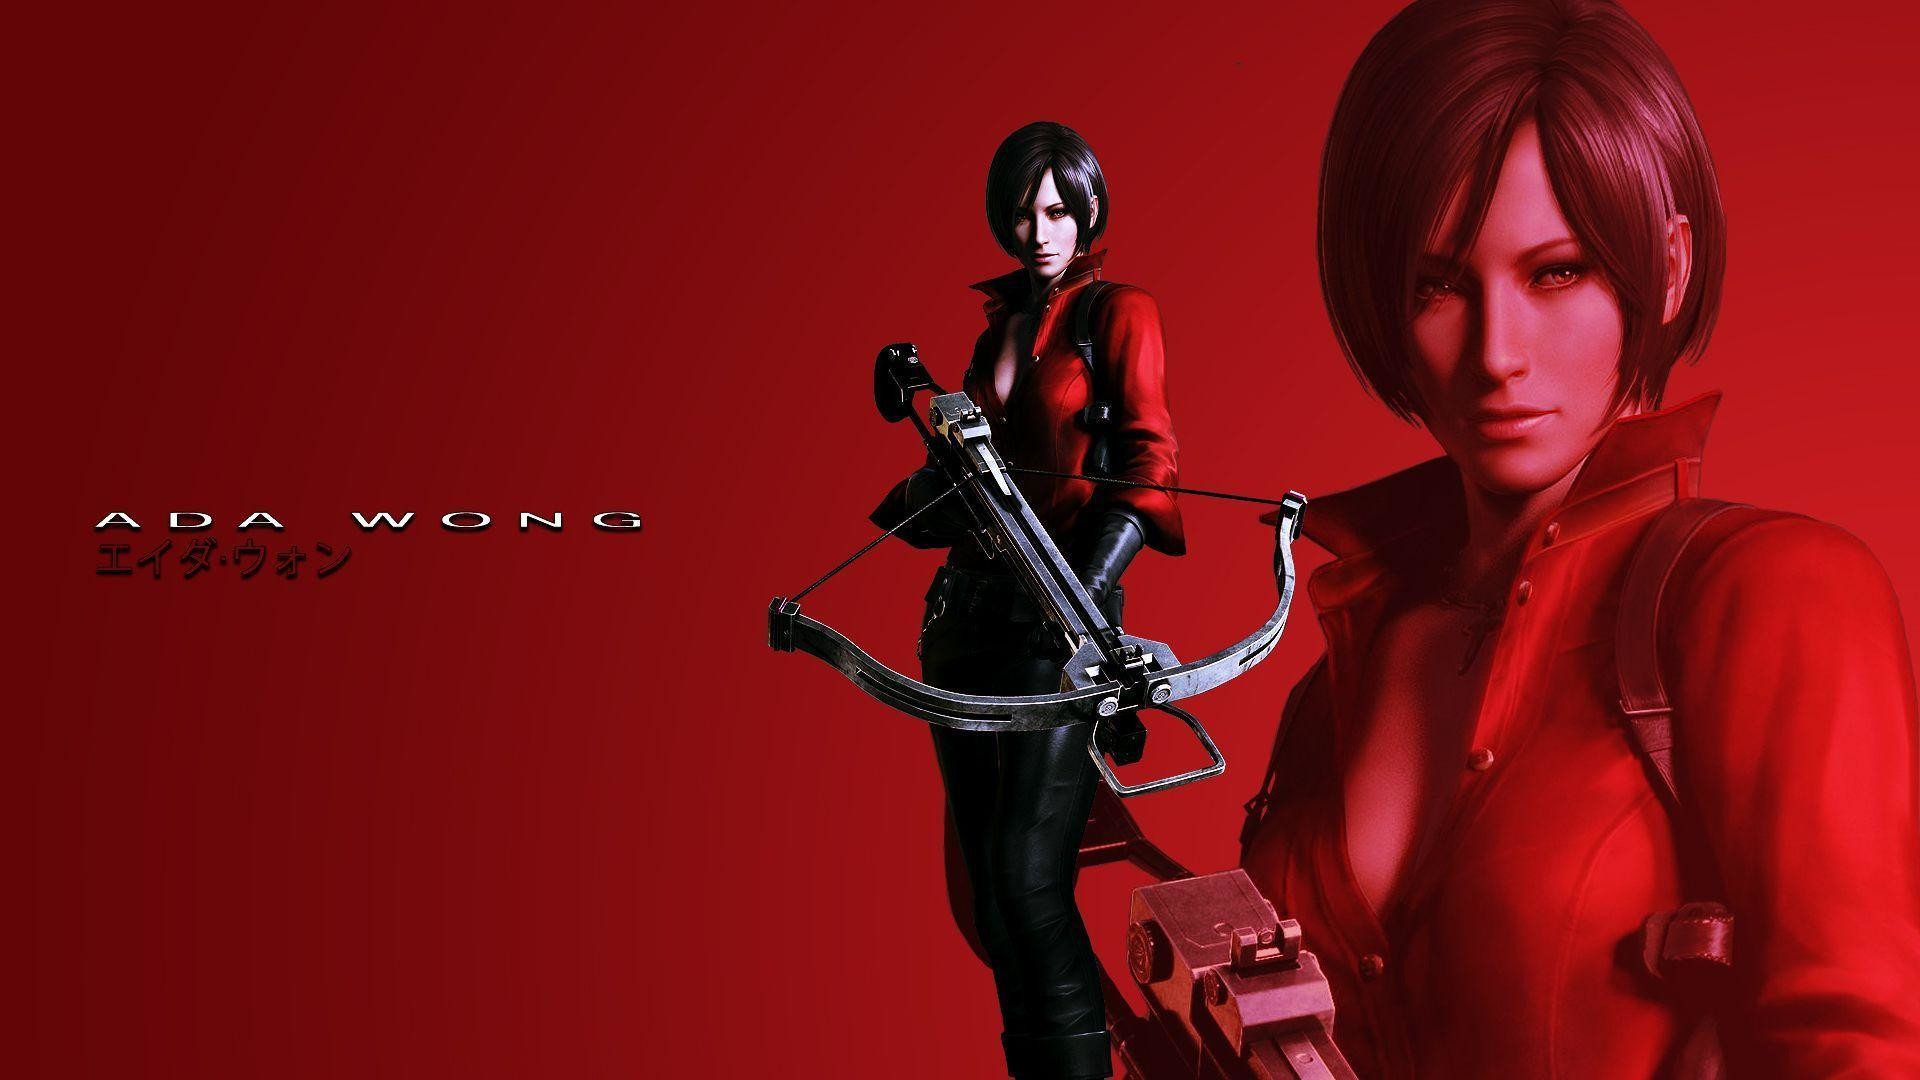 1920x1080 resident evil 6 wallpaper ada wong - WWE Wallpapers